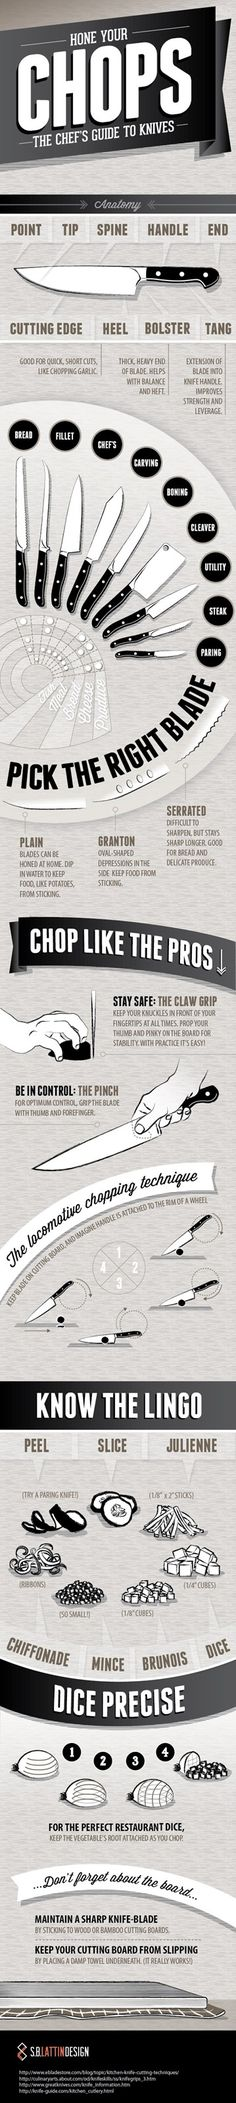 Use knives like a pro chef, pretty useful information that I have been to lazy to look up before!